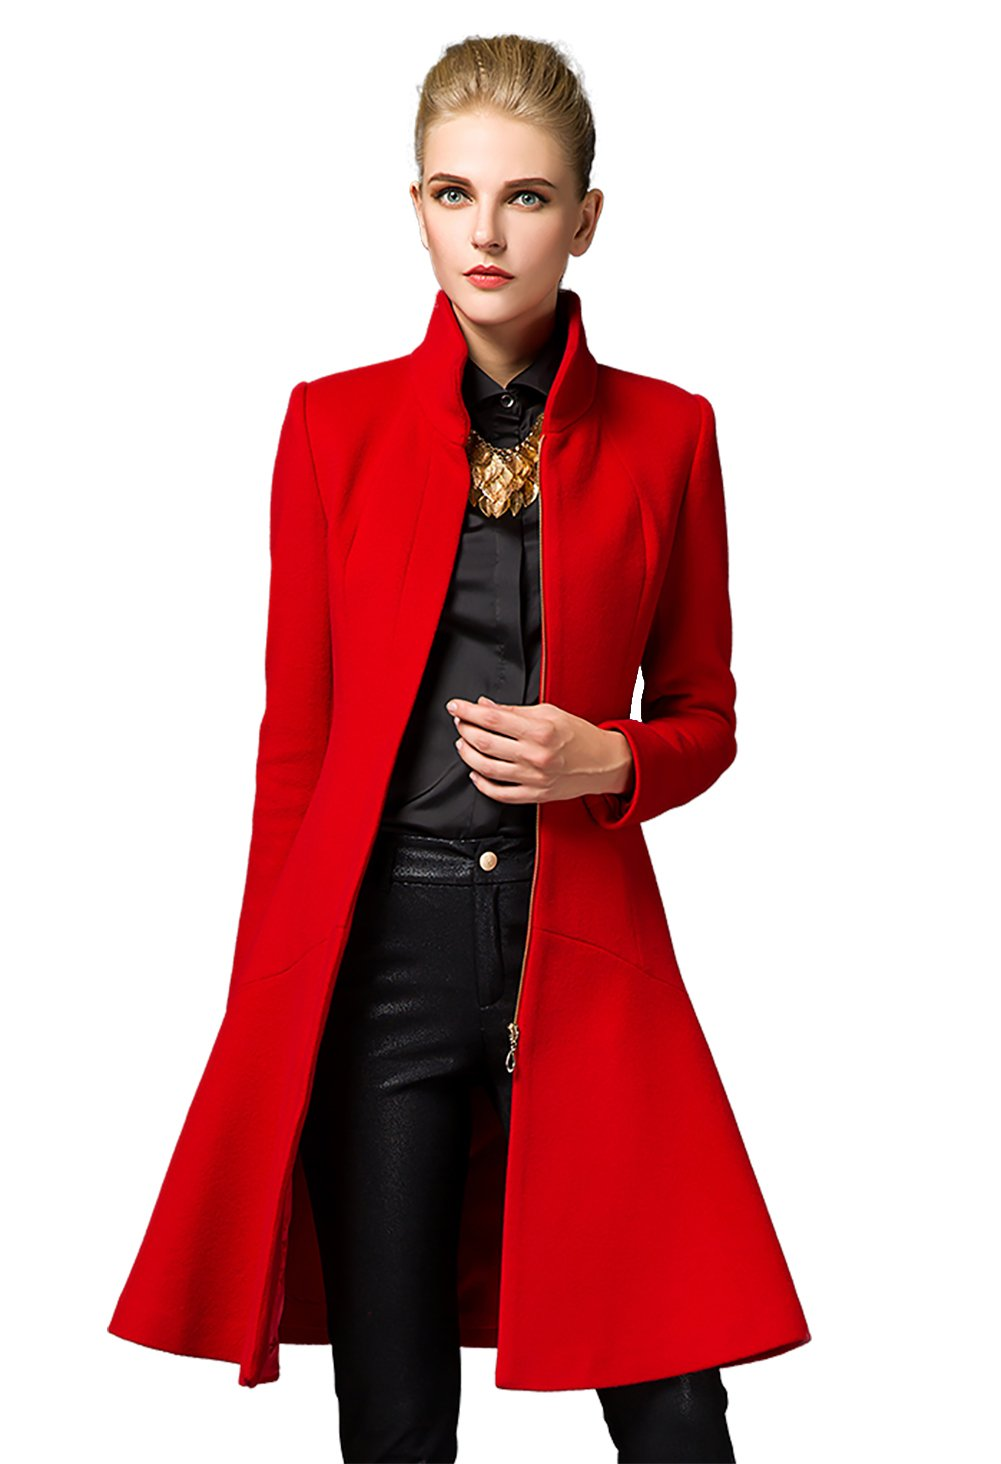 Shmily Girl Shmily Girl Women's Winter Slim Collar Mid-length Woolen Coat